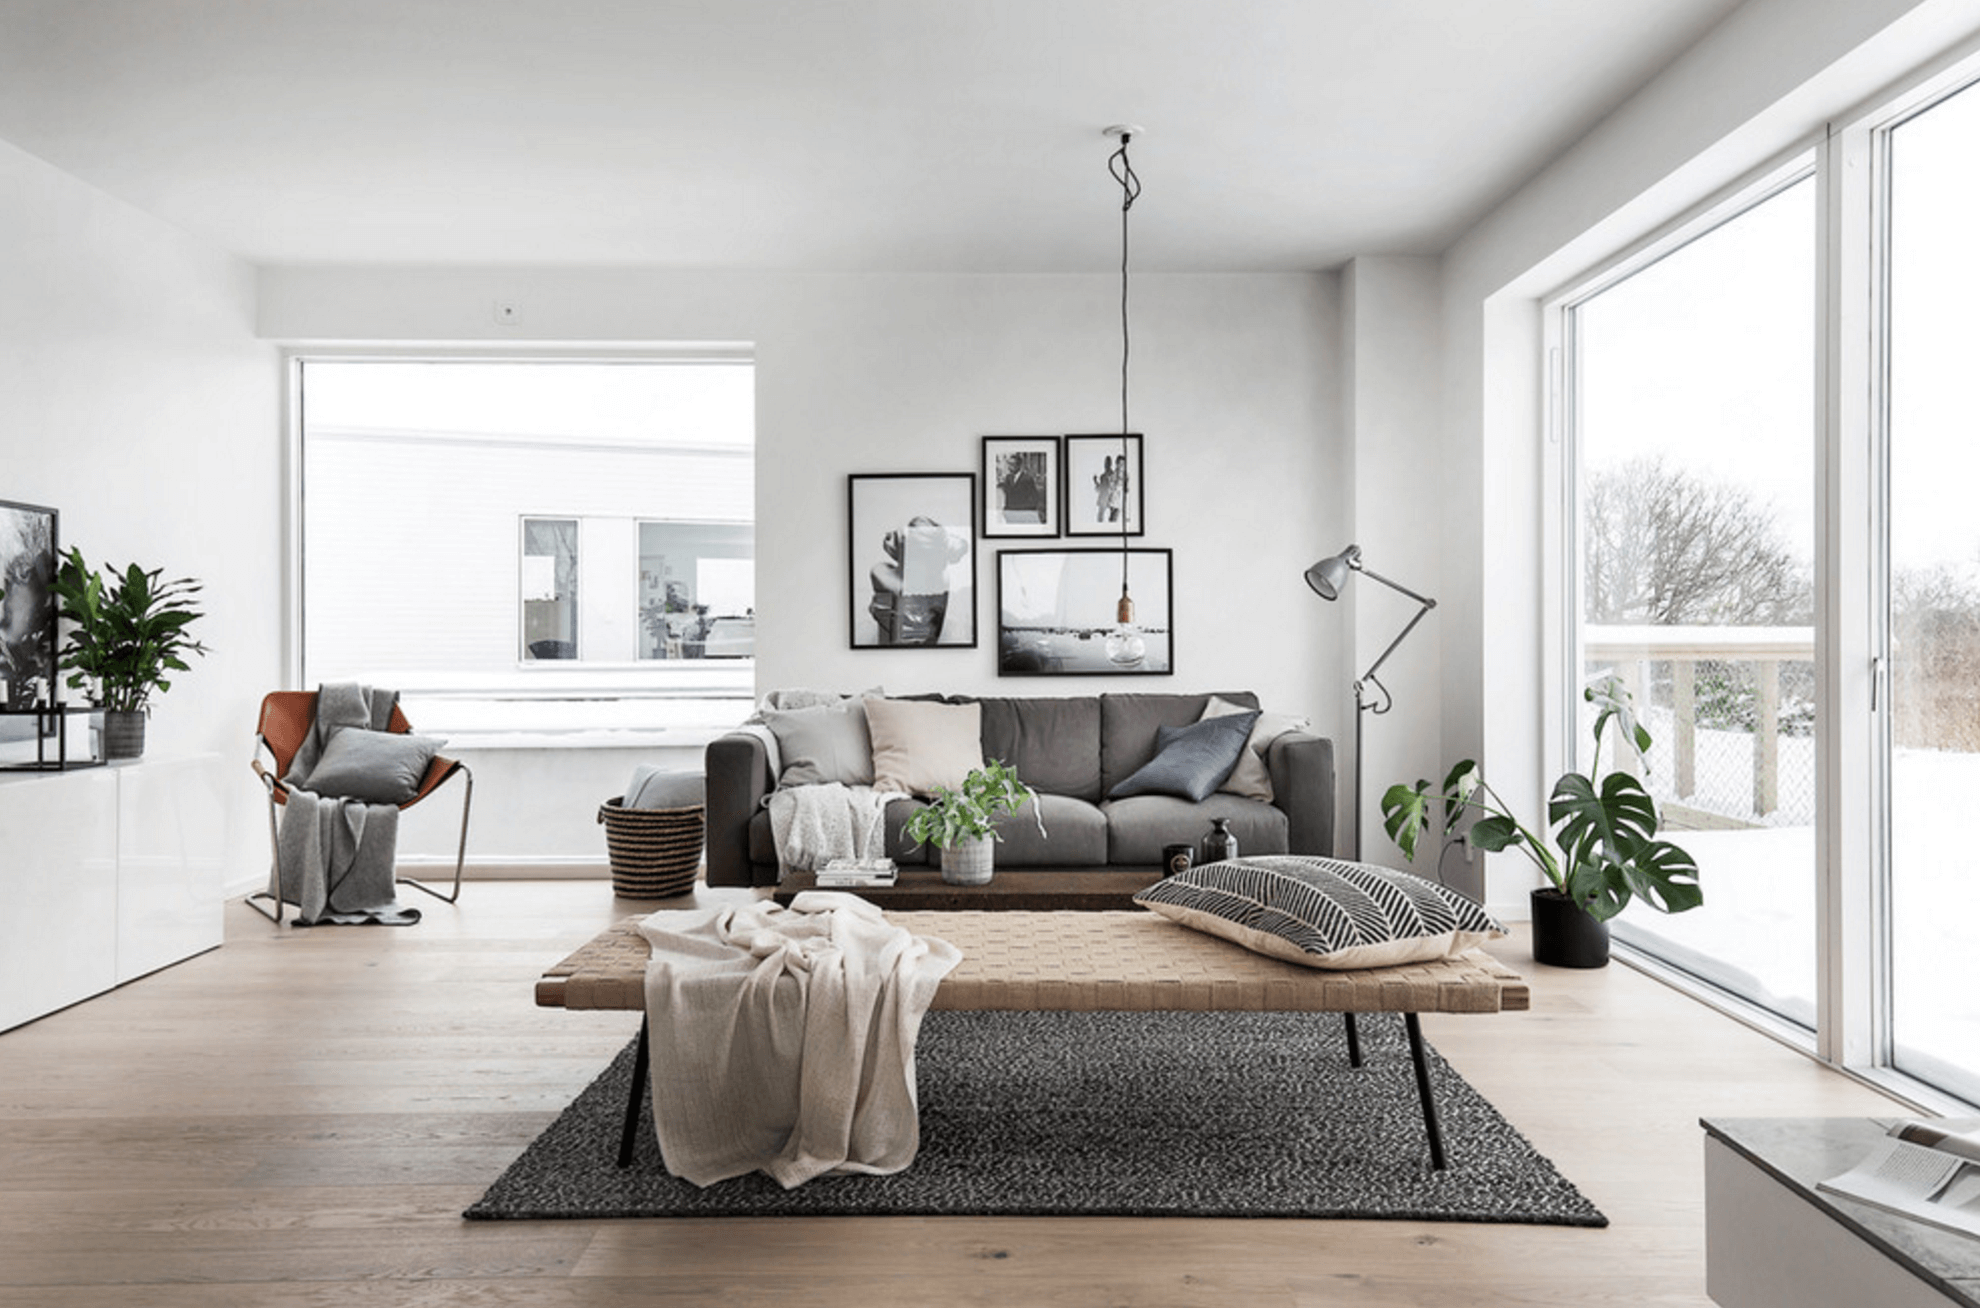 Quick Guide On How To Implement Scandinavian Style In Your